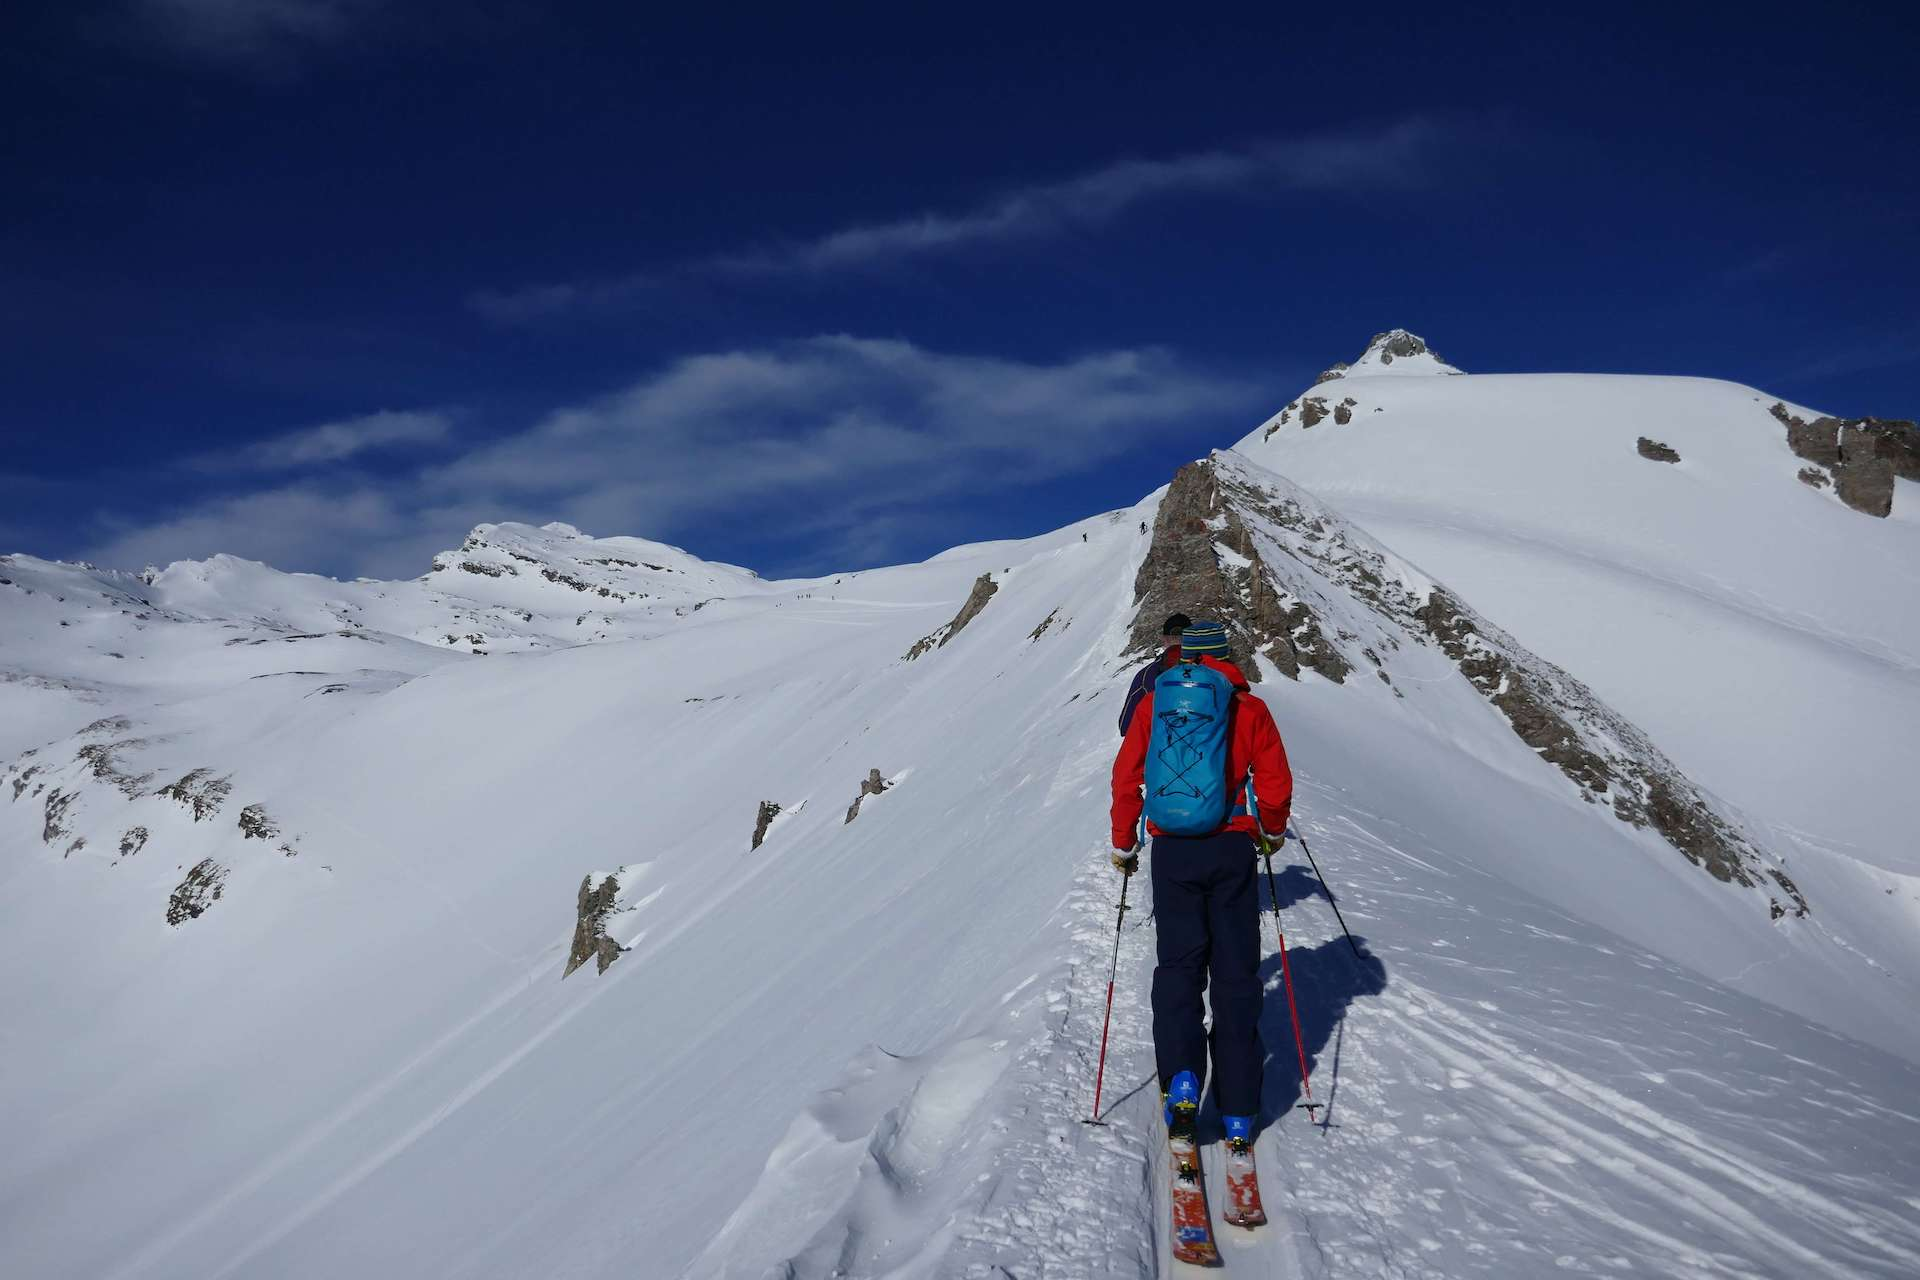 Ski touring snowy mountains in the alps